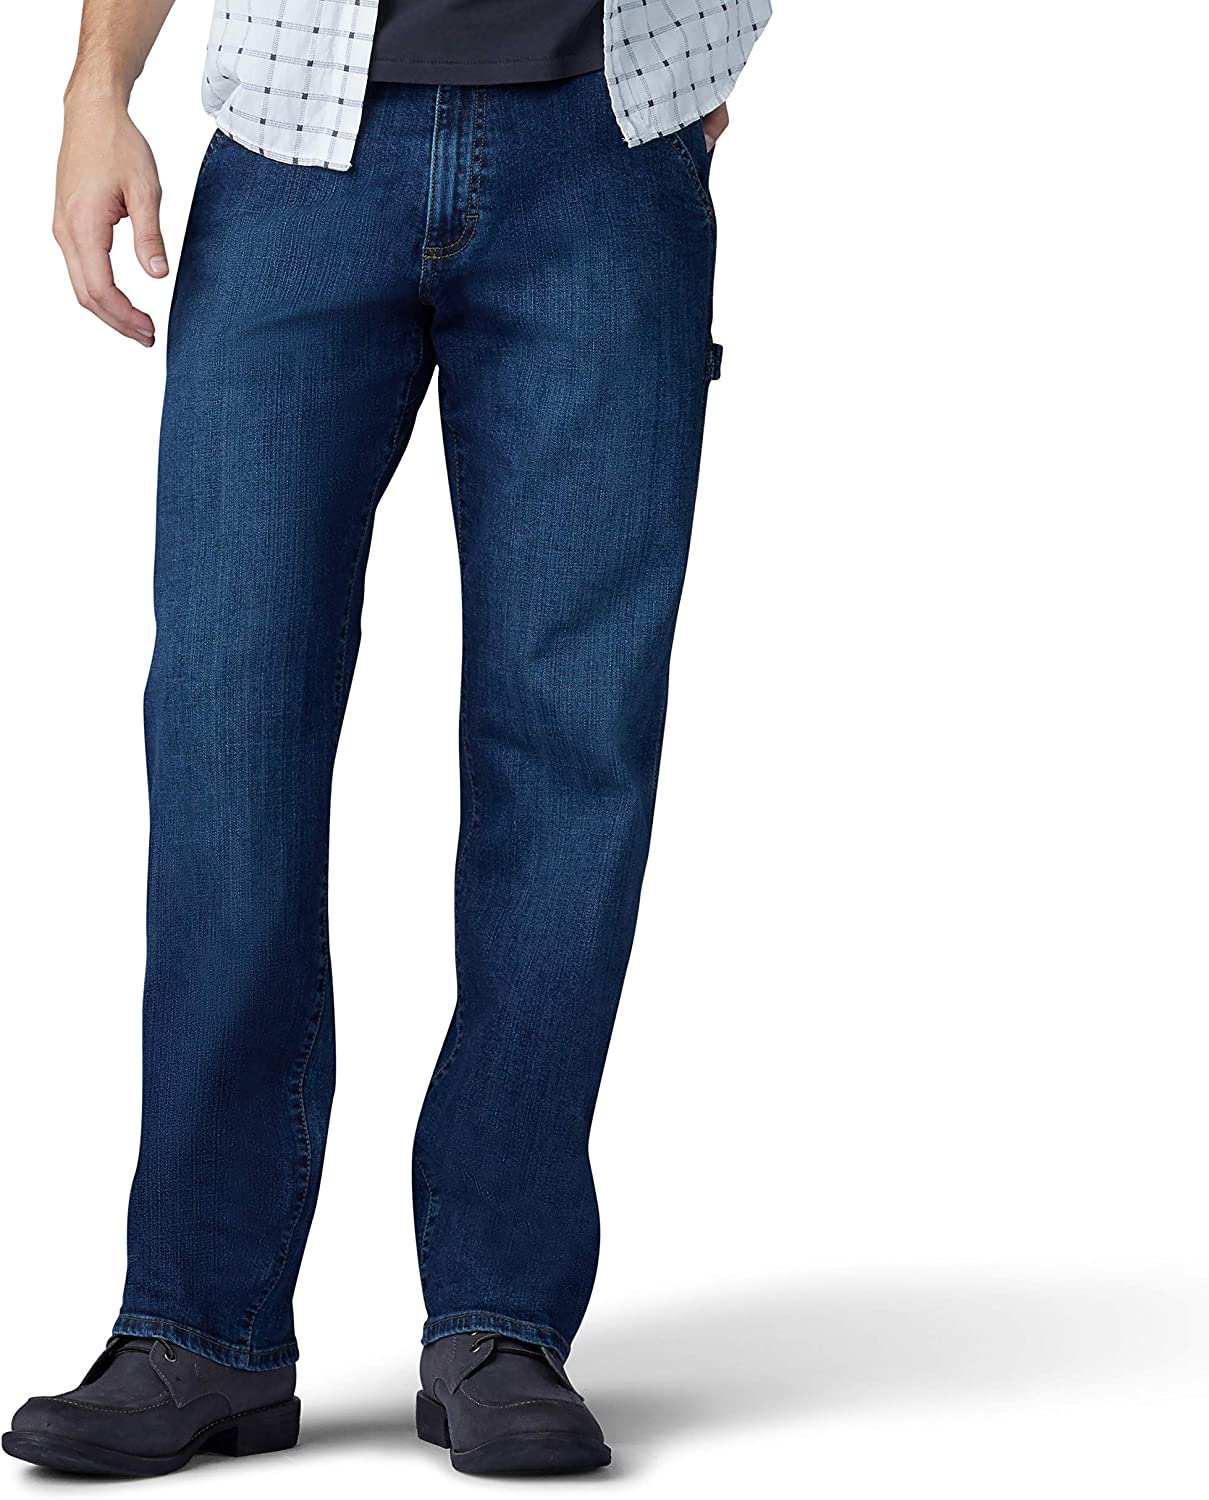 Max 68% OFF Weekly update Lee Men's Performance Series Extreme Carpenter Motion Loose Fit